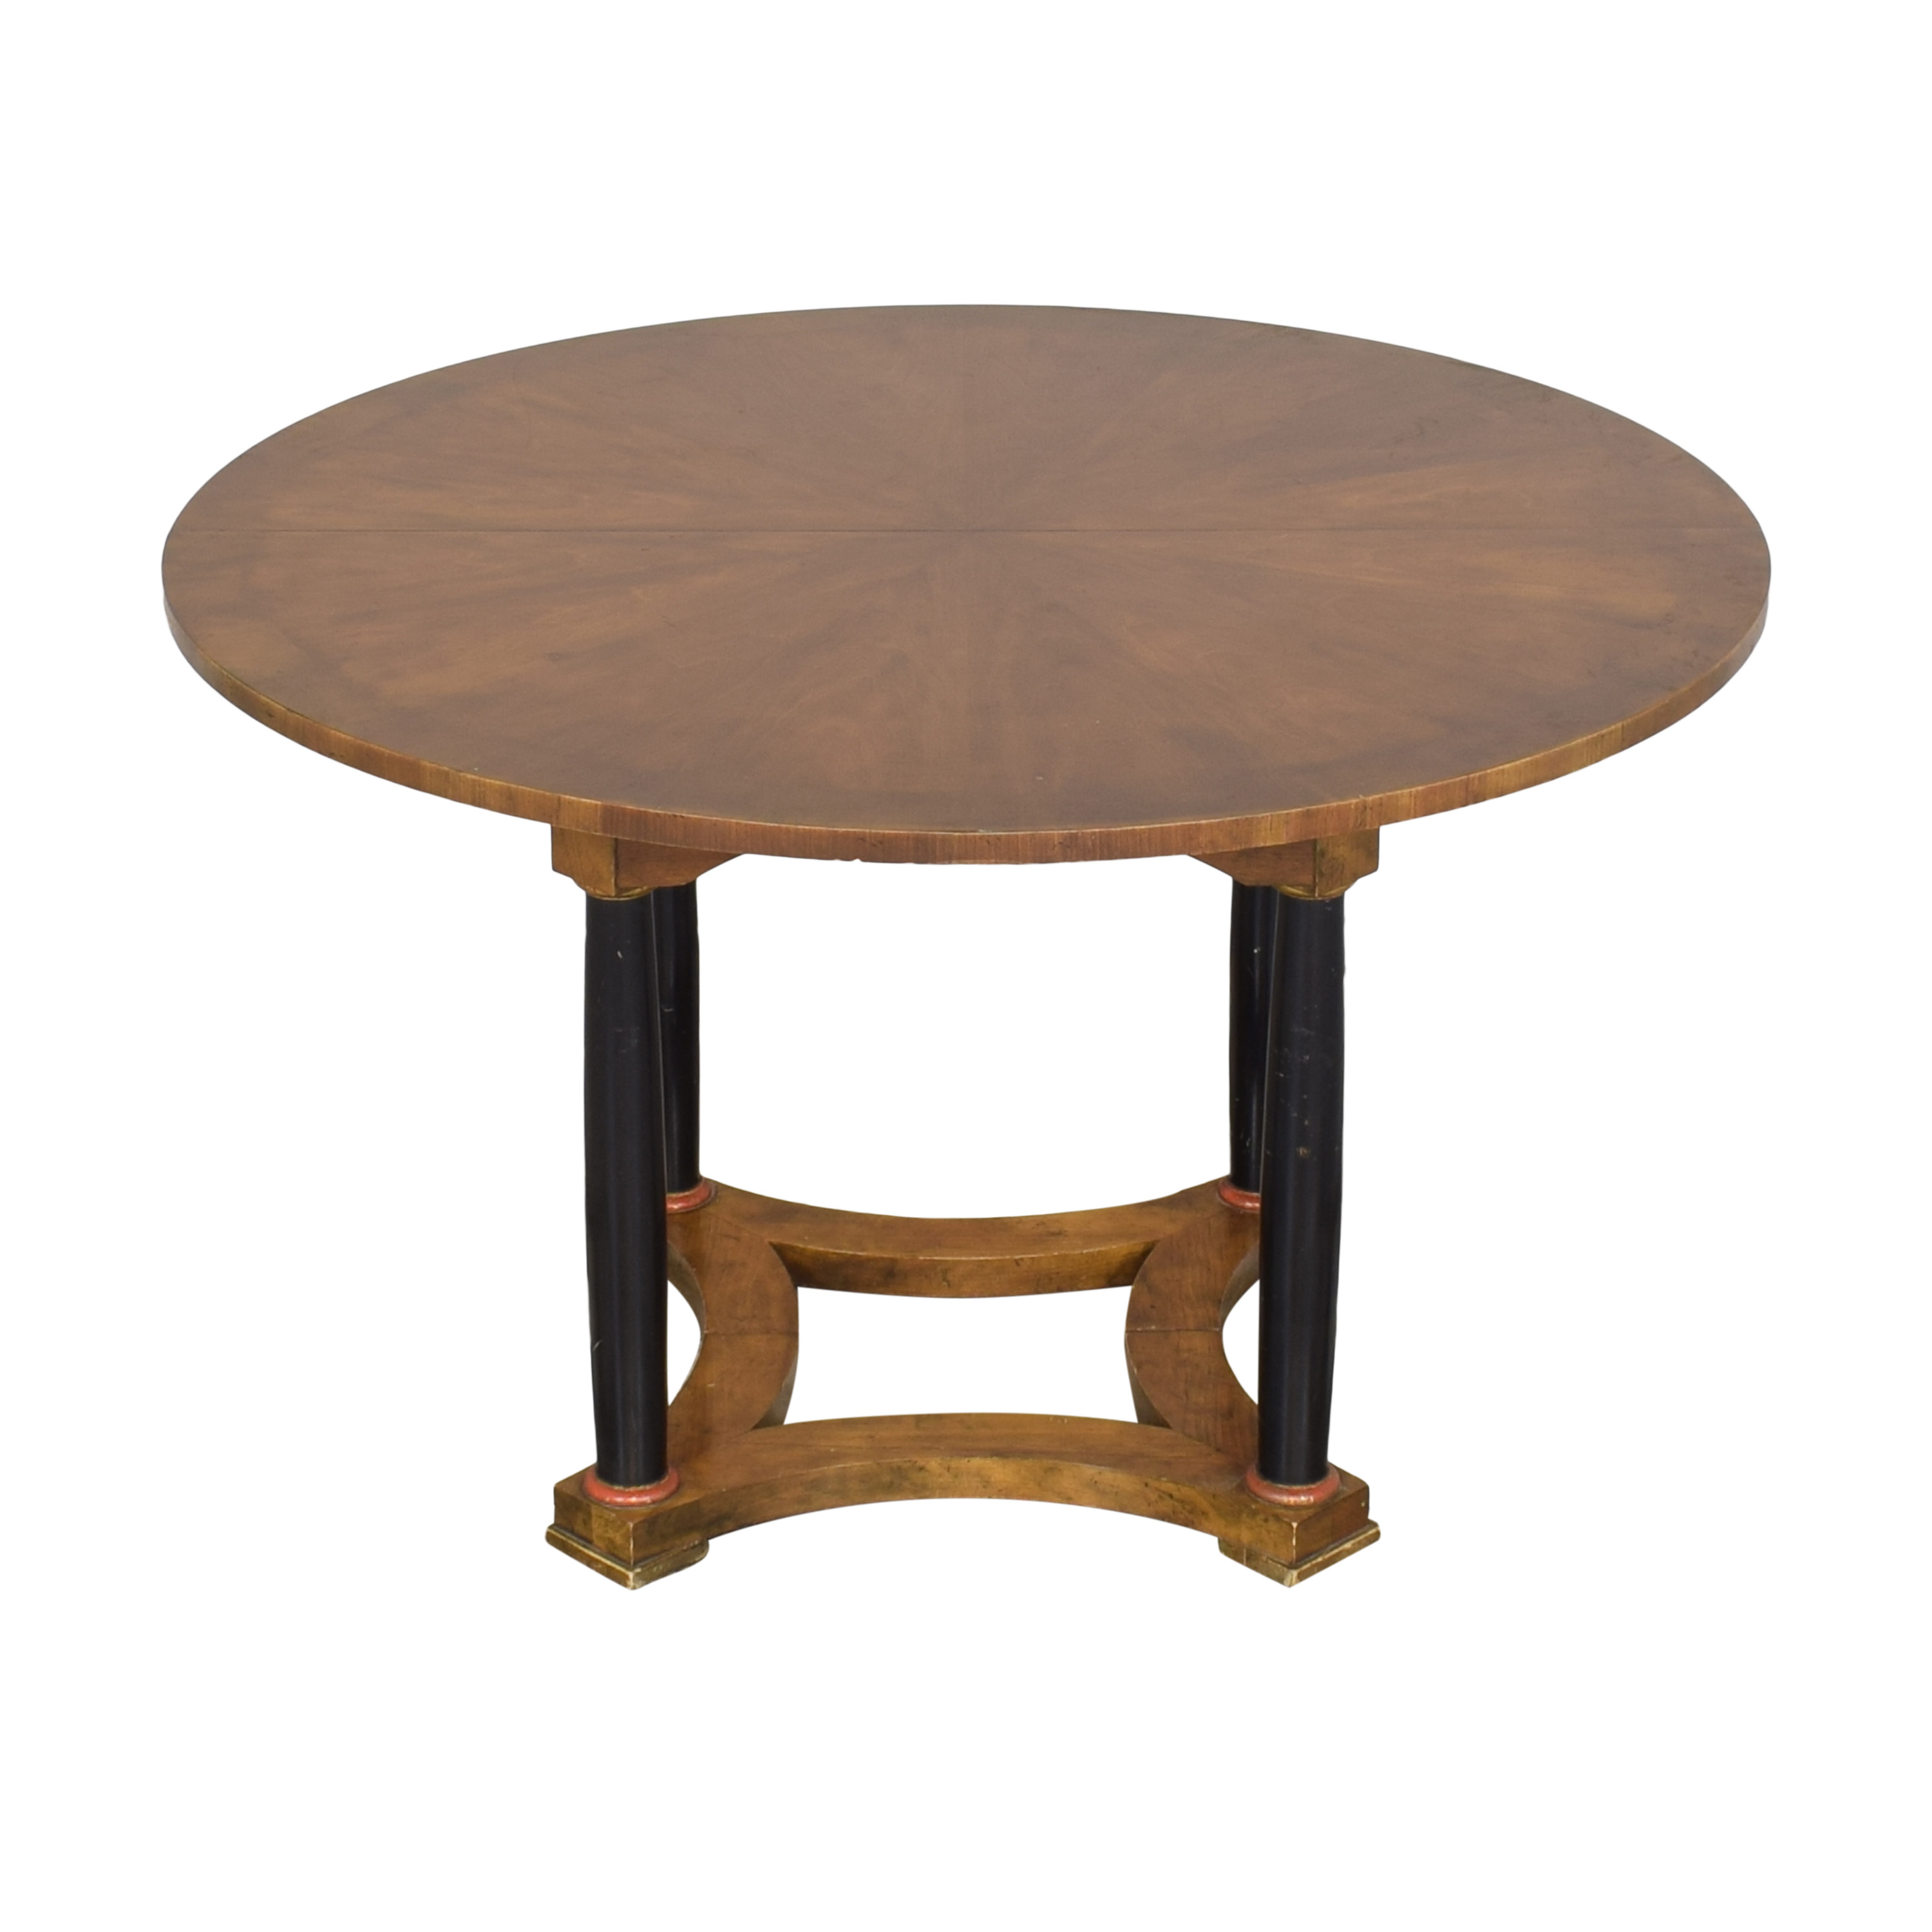 Baker Furniture Baker Furniture Round Dining Table ma